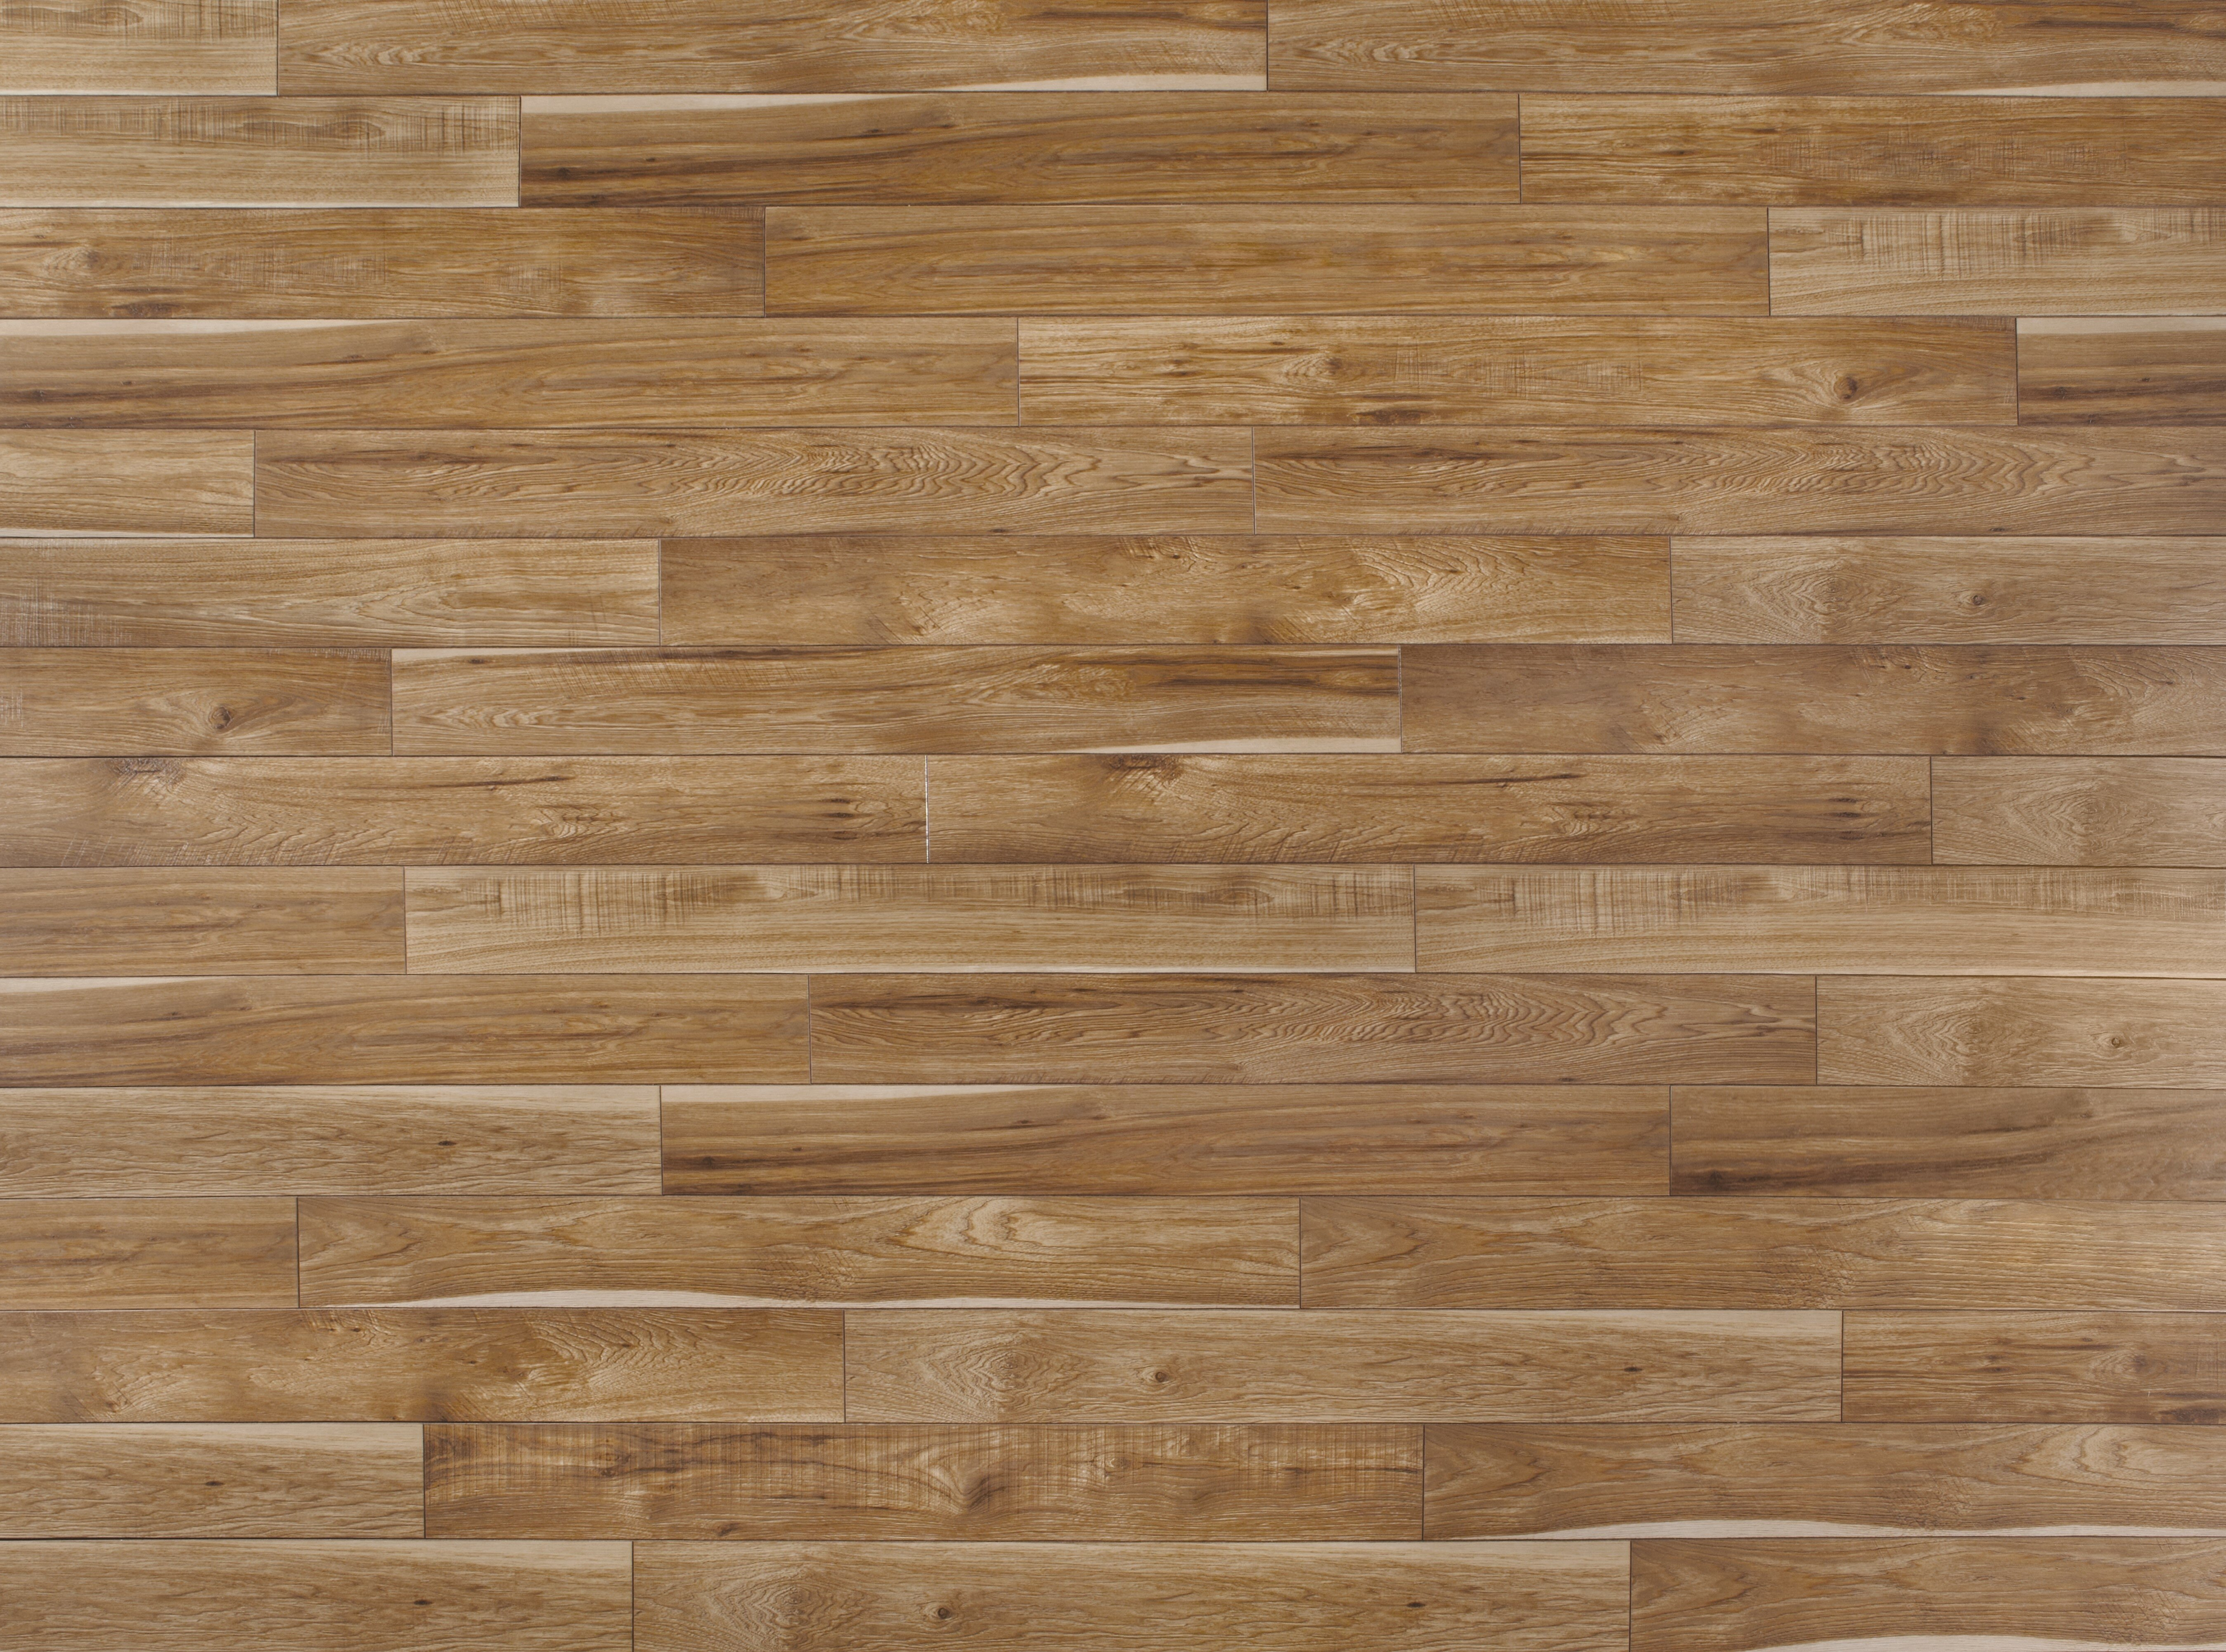 Mannington Restoration 6 X 51 12mm Hickory Laminate Flooring In Natural Wayfair